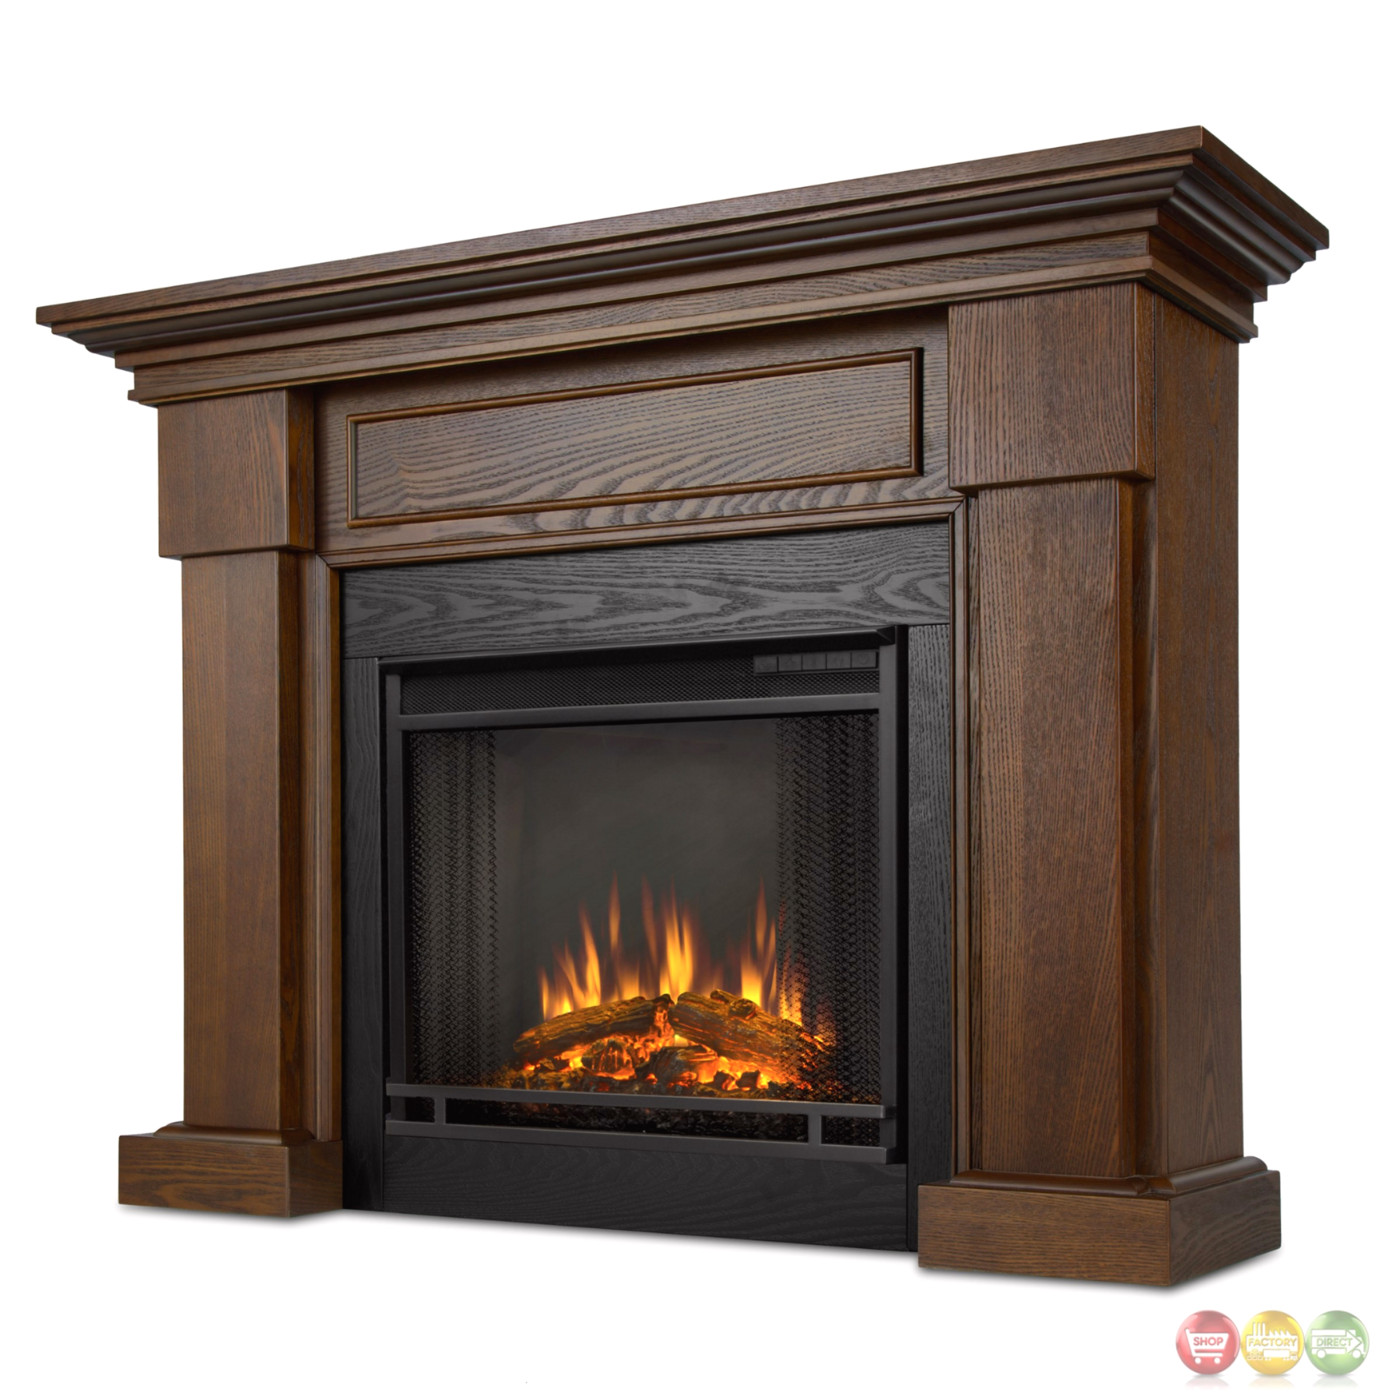 hillcrest led electric heater fireplace in chestnut oak